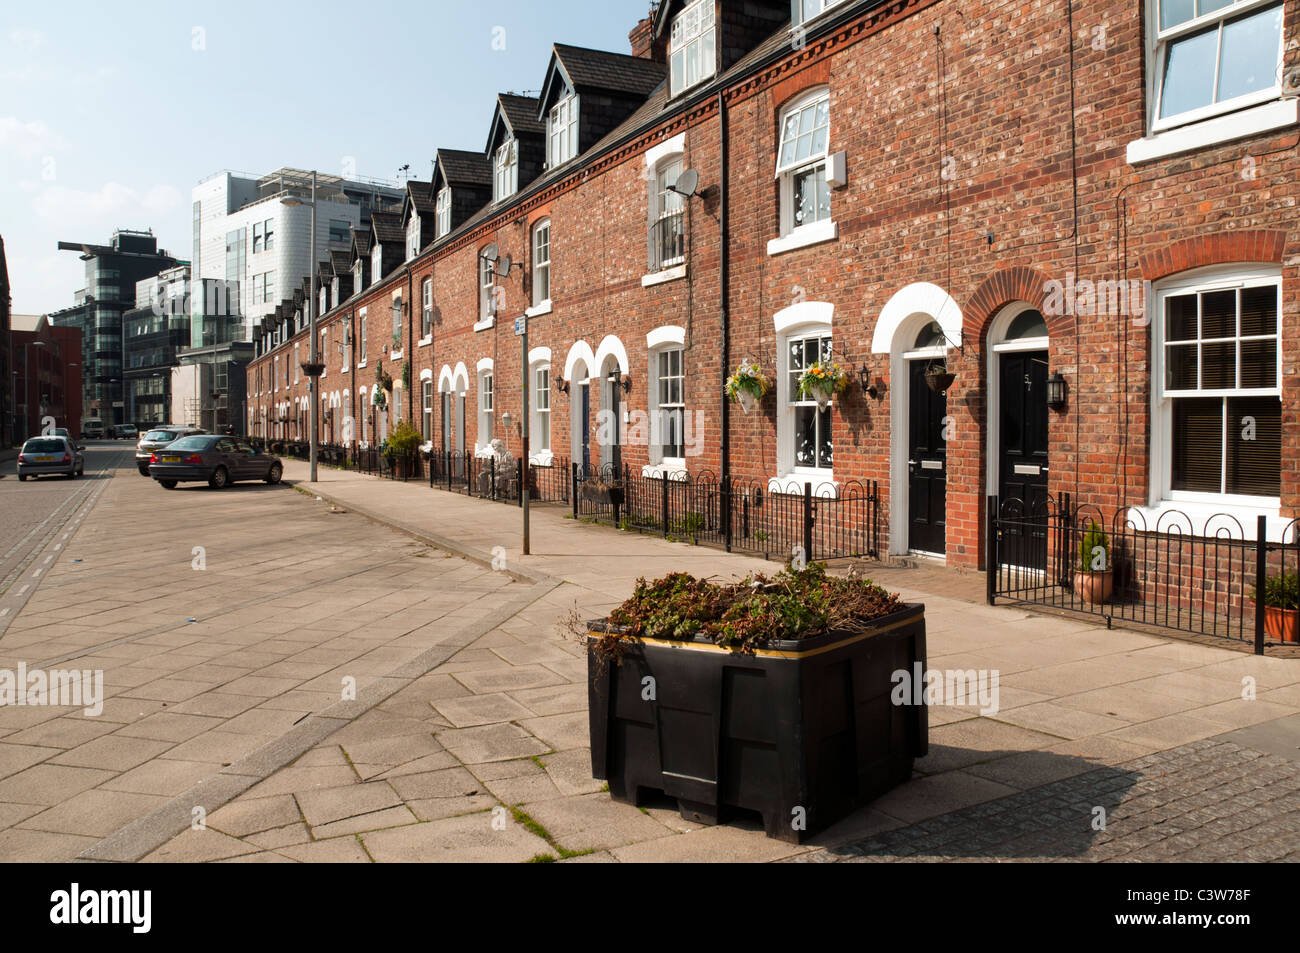 Restored late 19th century terraced houses, George Leigh St, Ancoats Urban Village, Northern Quarter, Manchester, - Stock Image